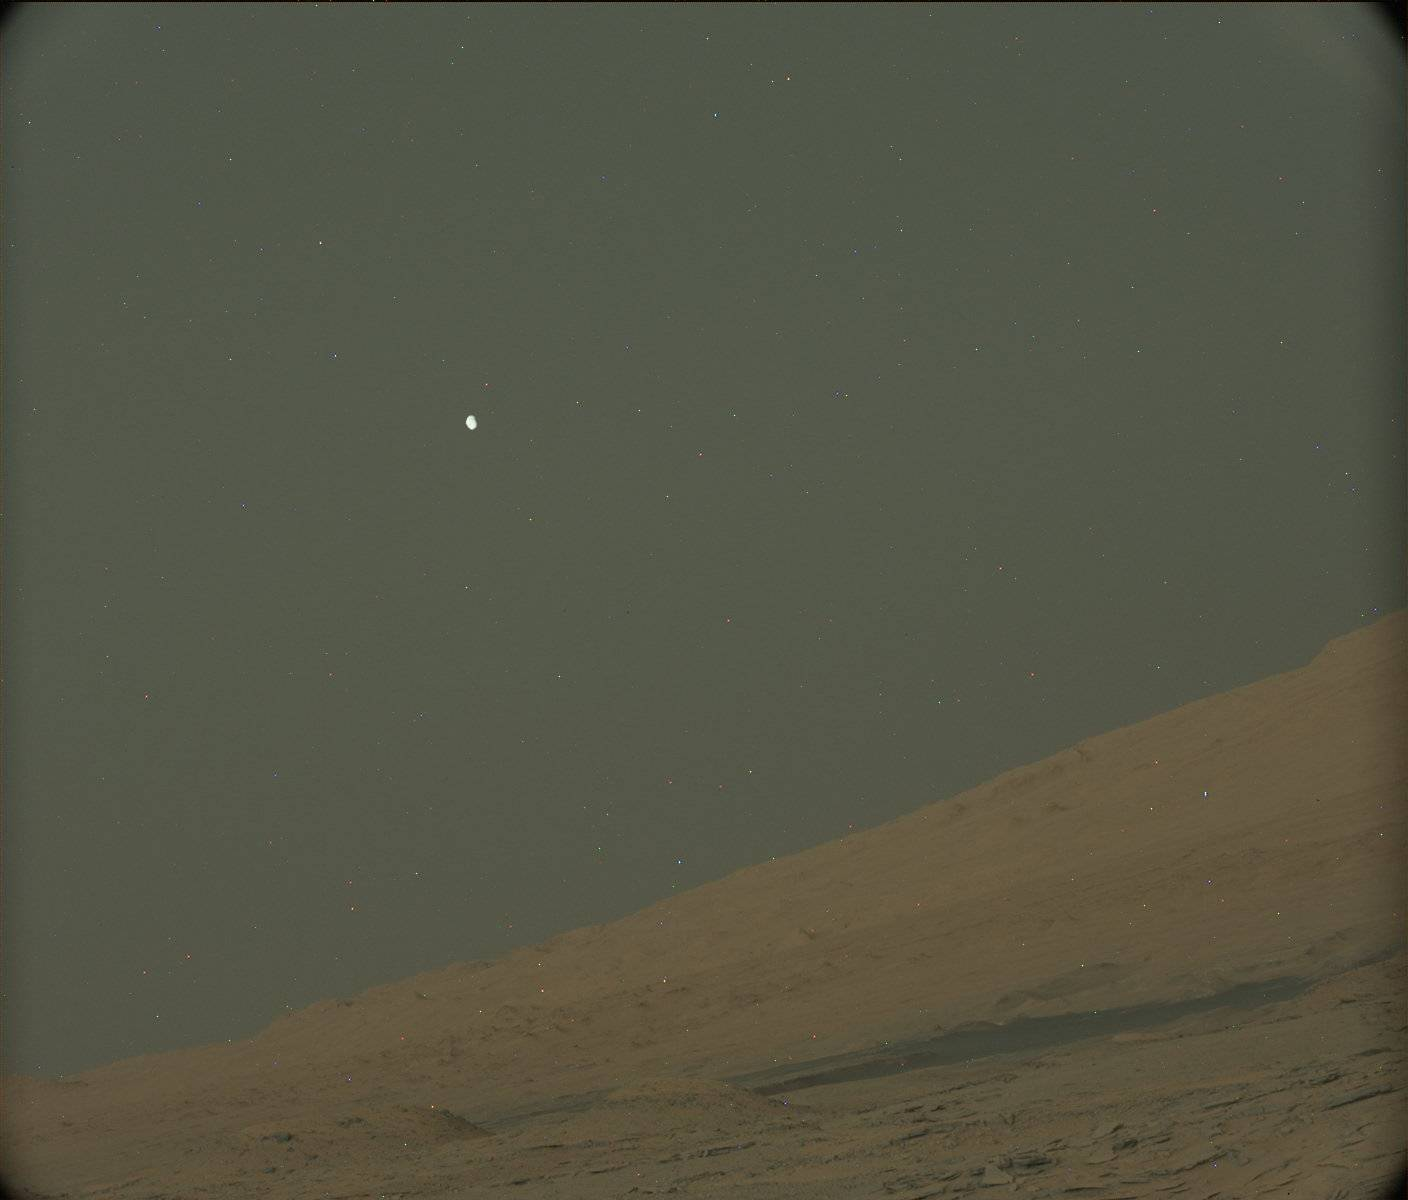 mars phobos from mars view - photo #14